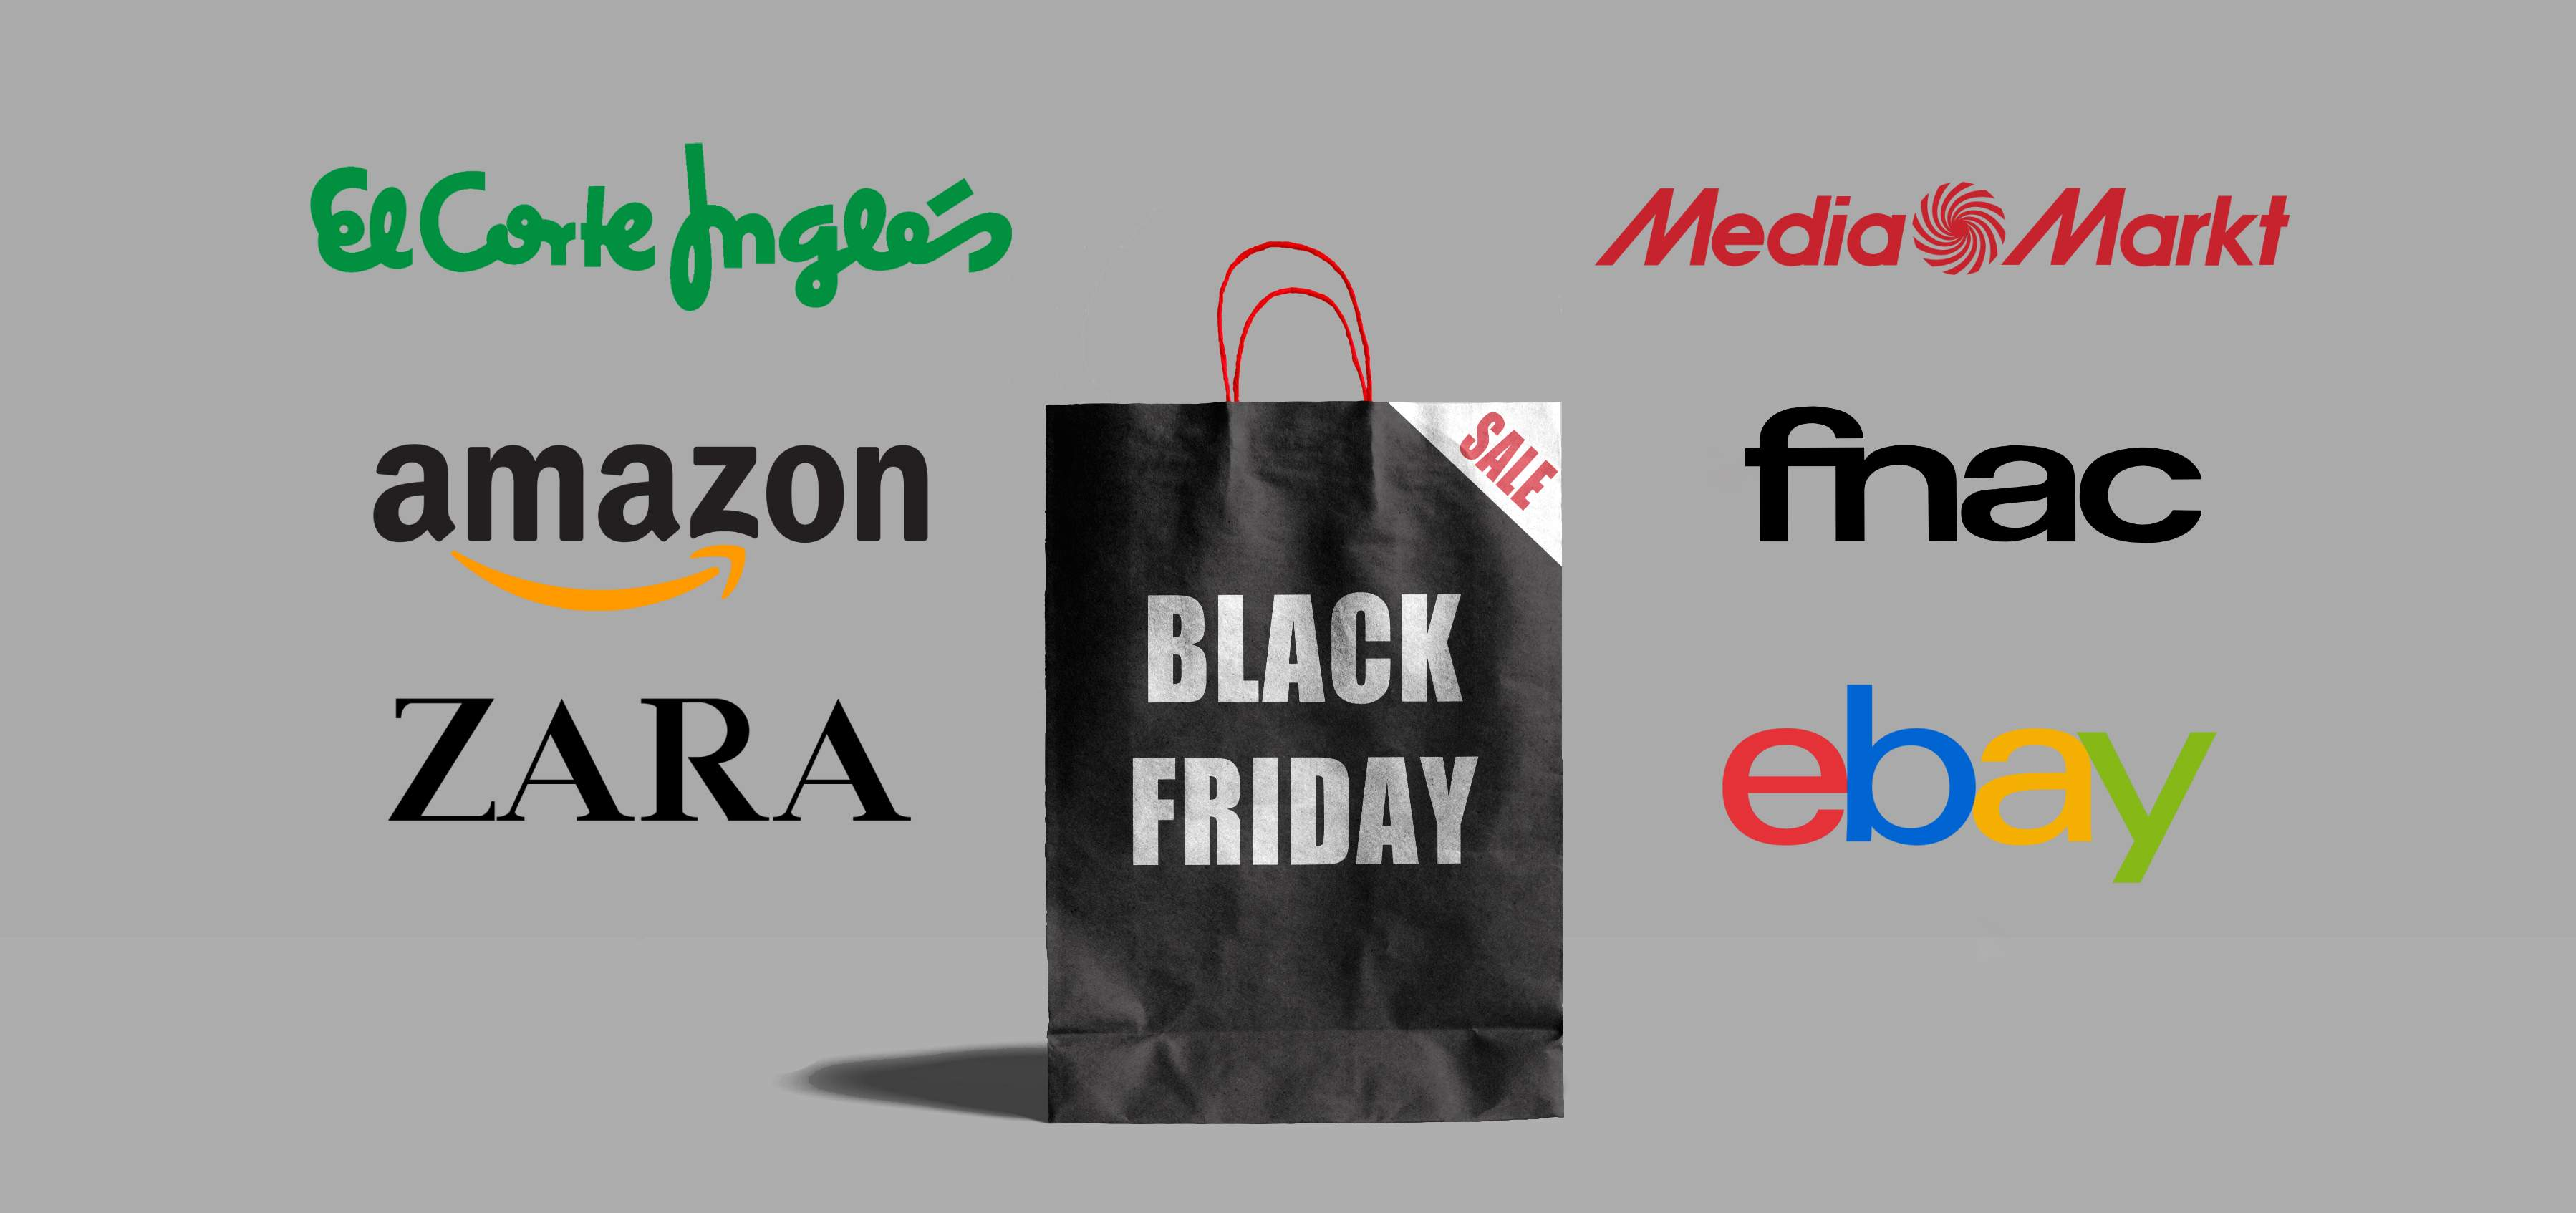 black-friday-amazon-elcorteingles-zara-media-markt-fnac-ebay.jpg